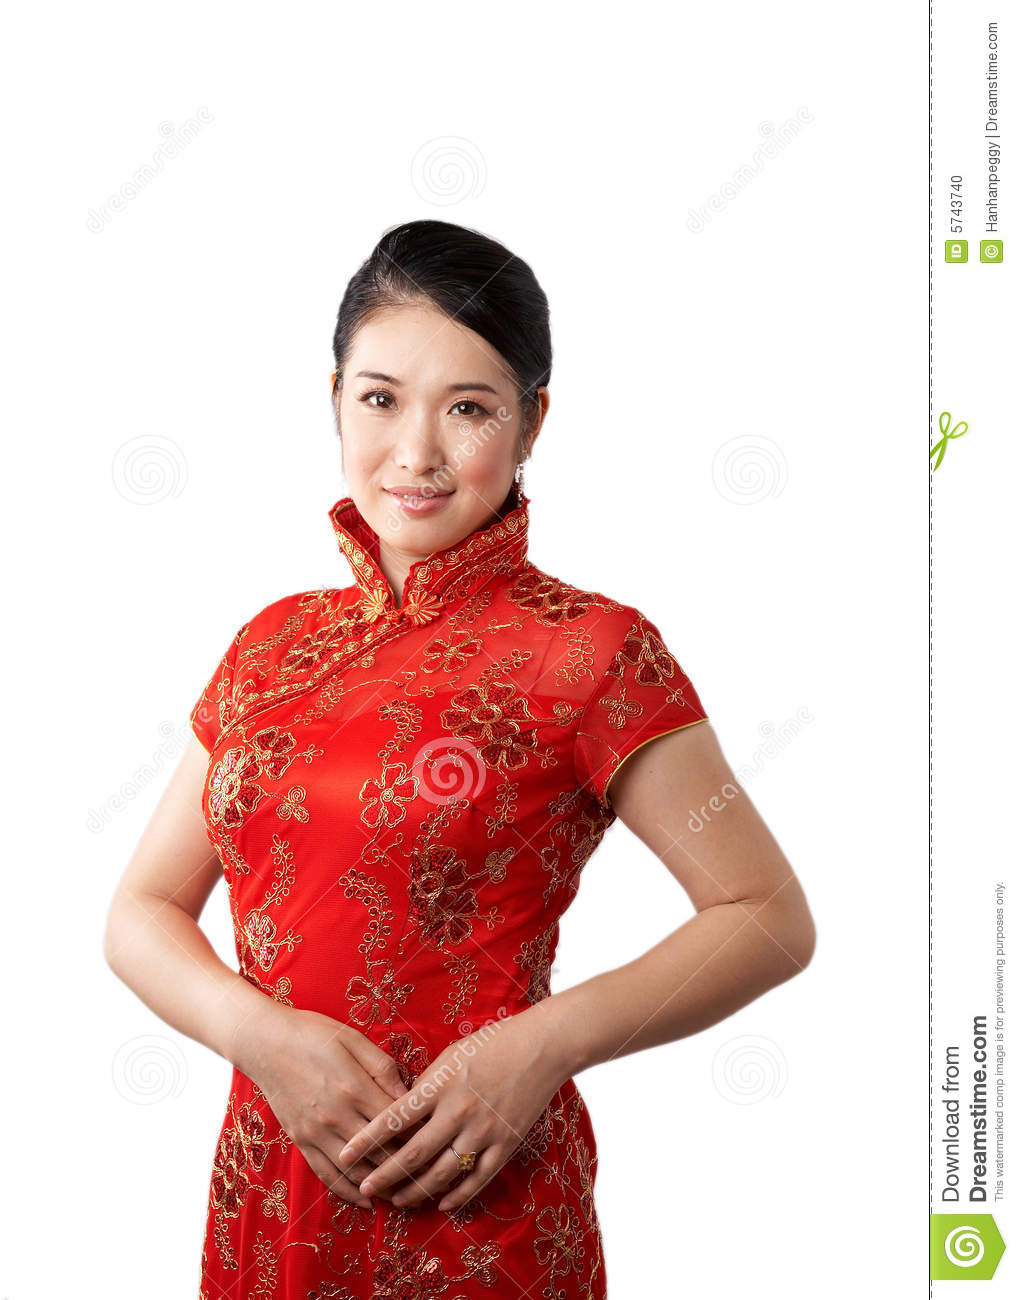 Classy asian woman wearing traditional red cheong sam and holding a